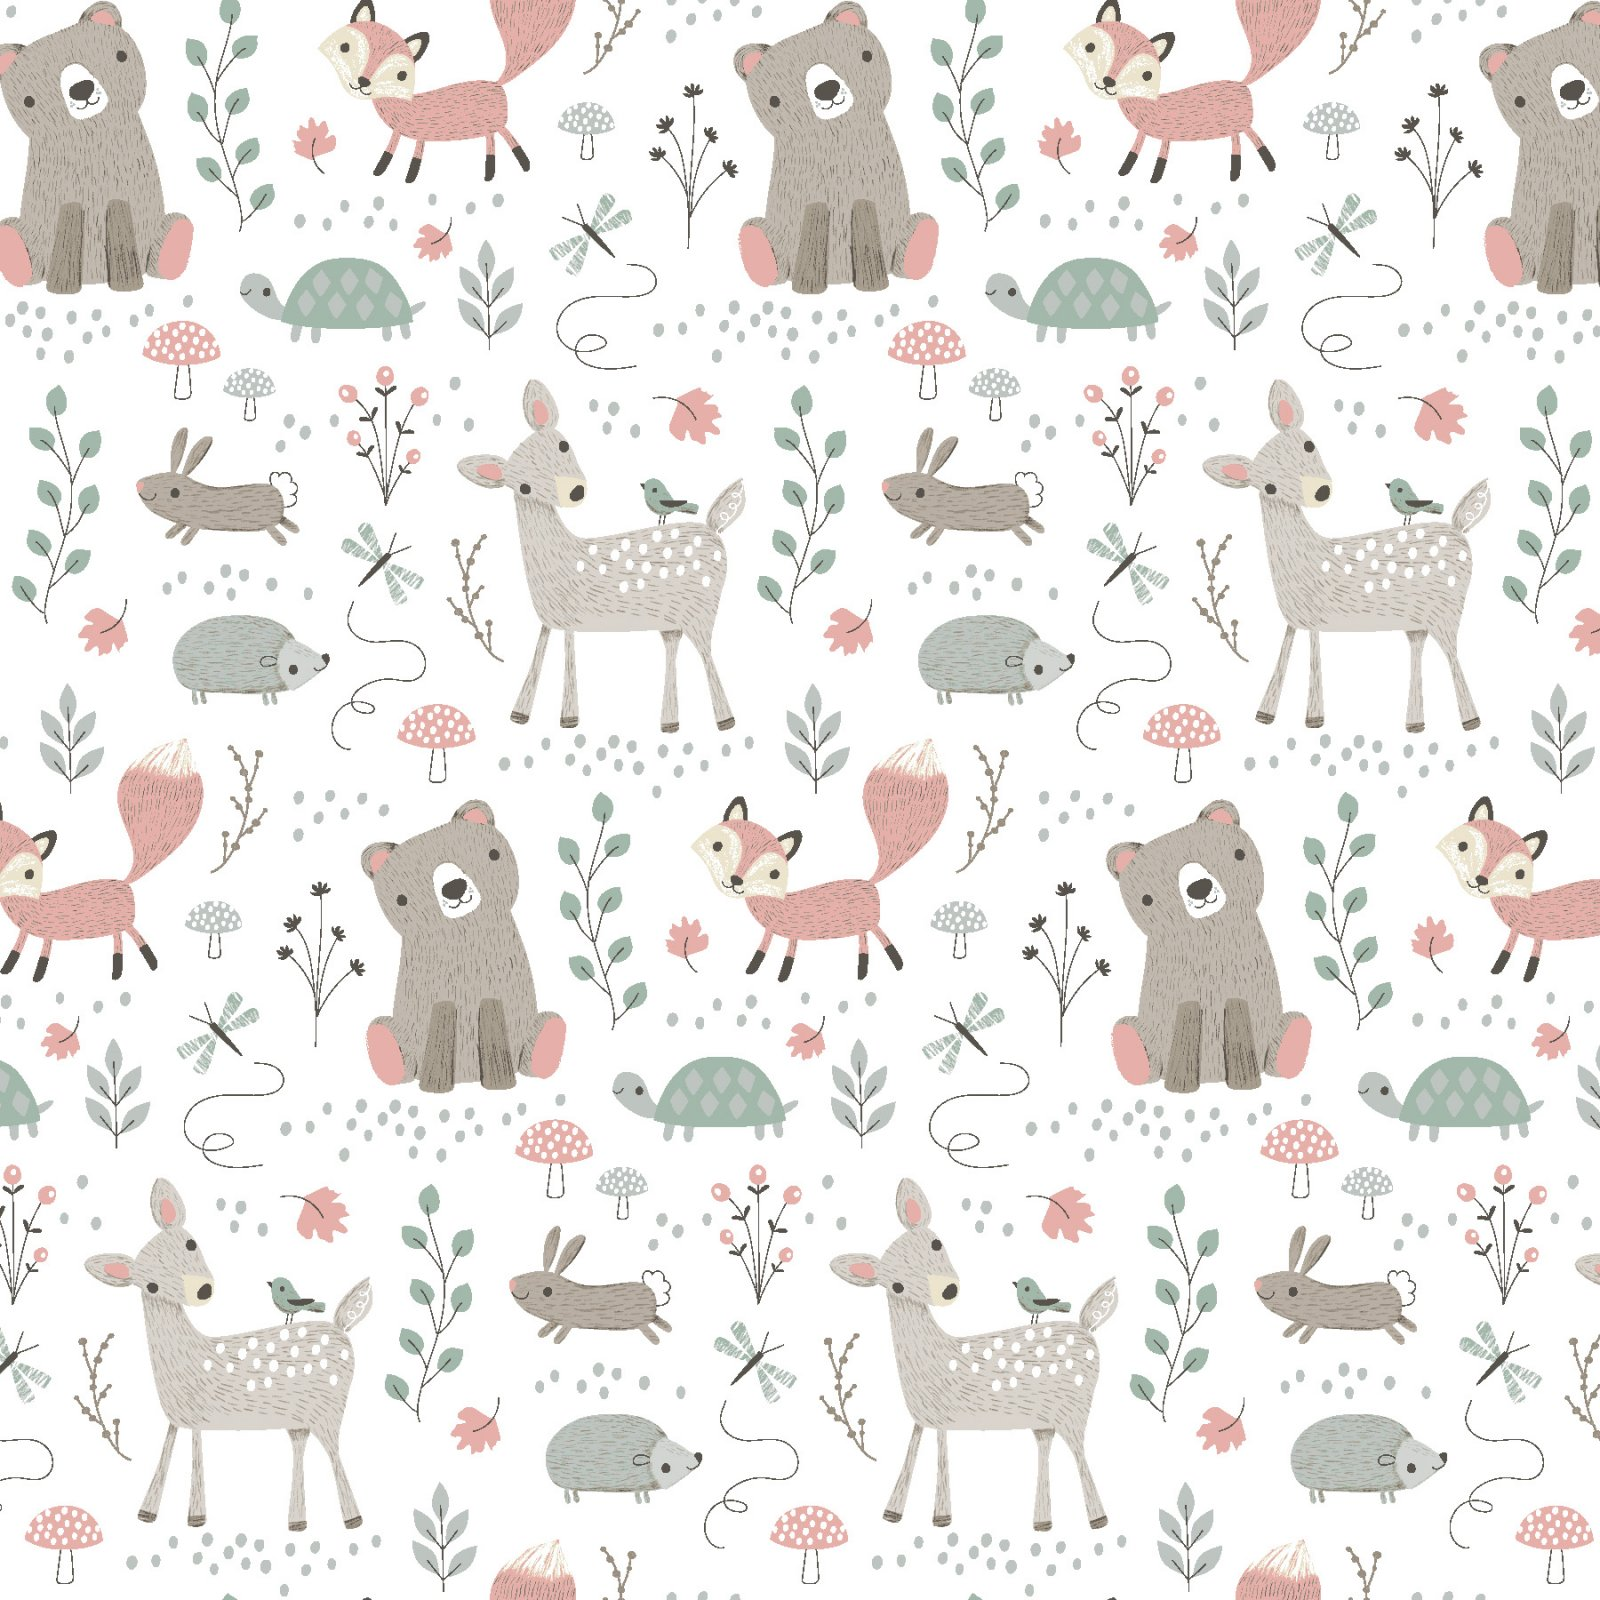 Fabric Palette Fat Quarter <br>White Novelty - Design may vary <br>MD-G-PC333